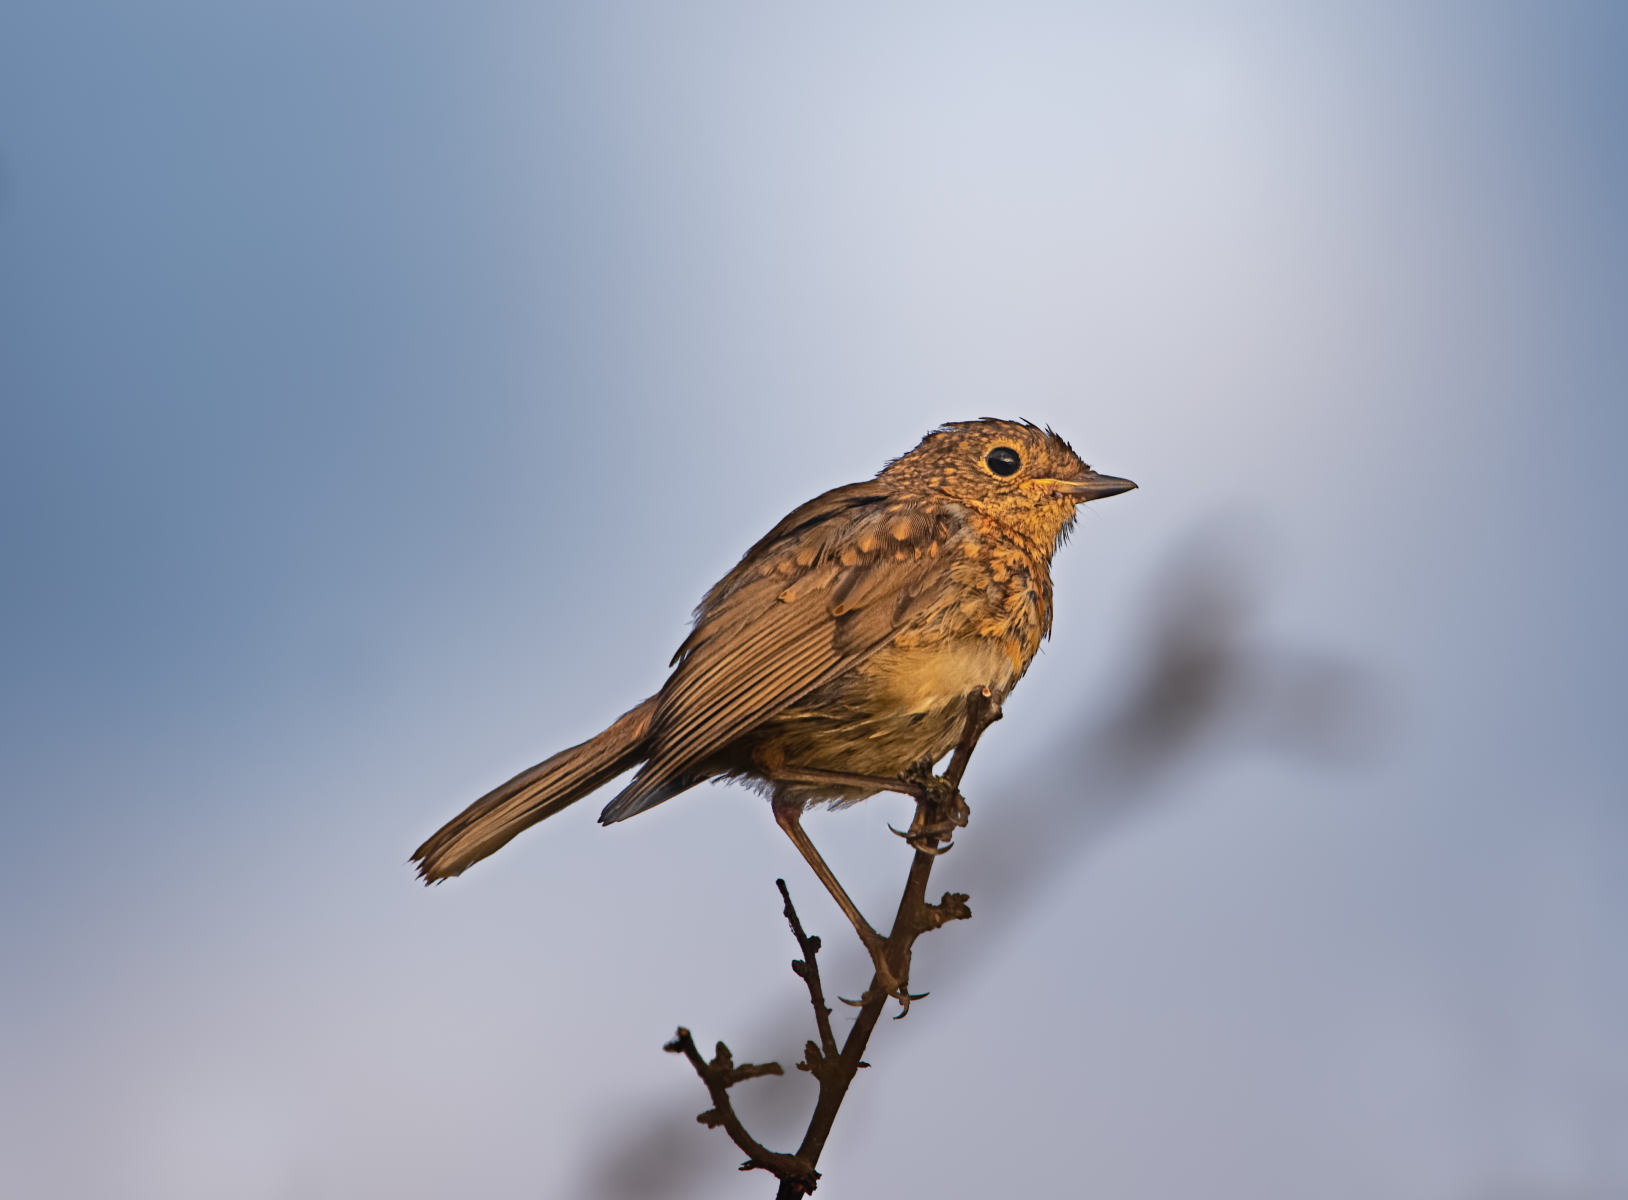 young robin on branch against blue sky